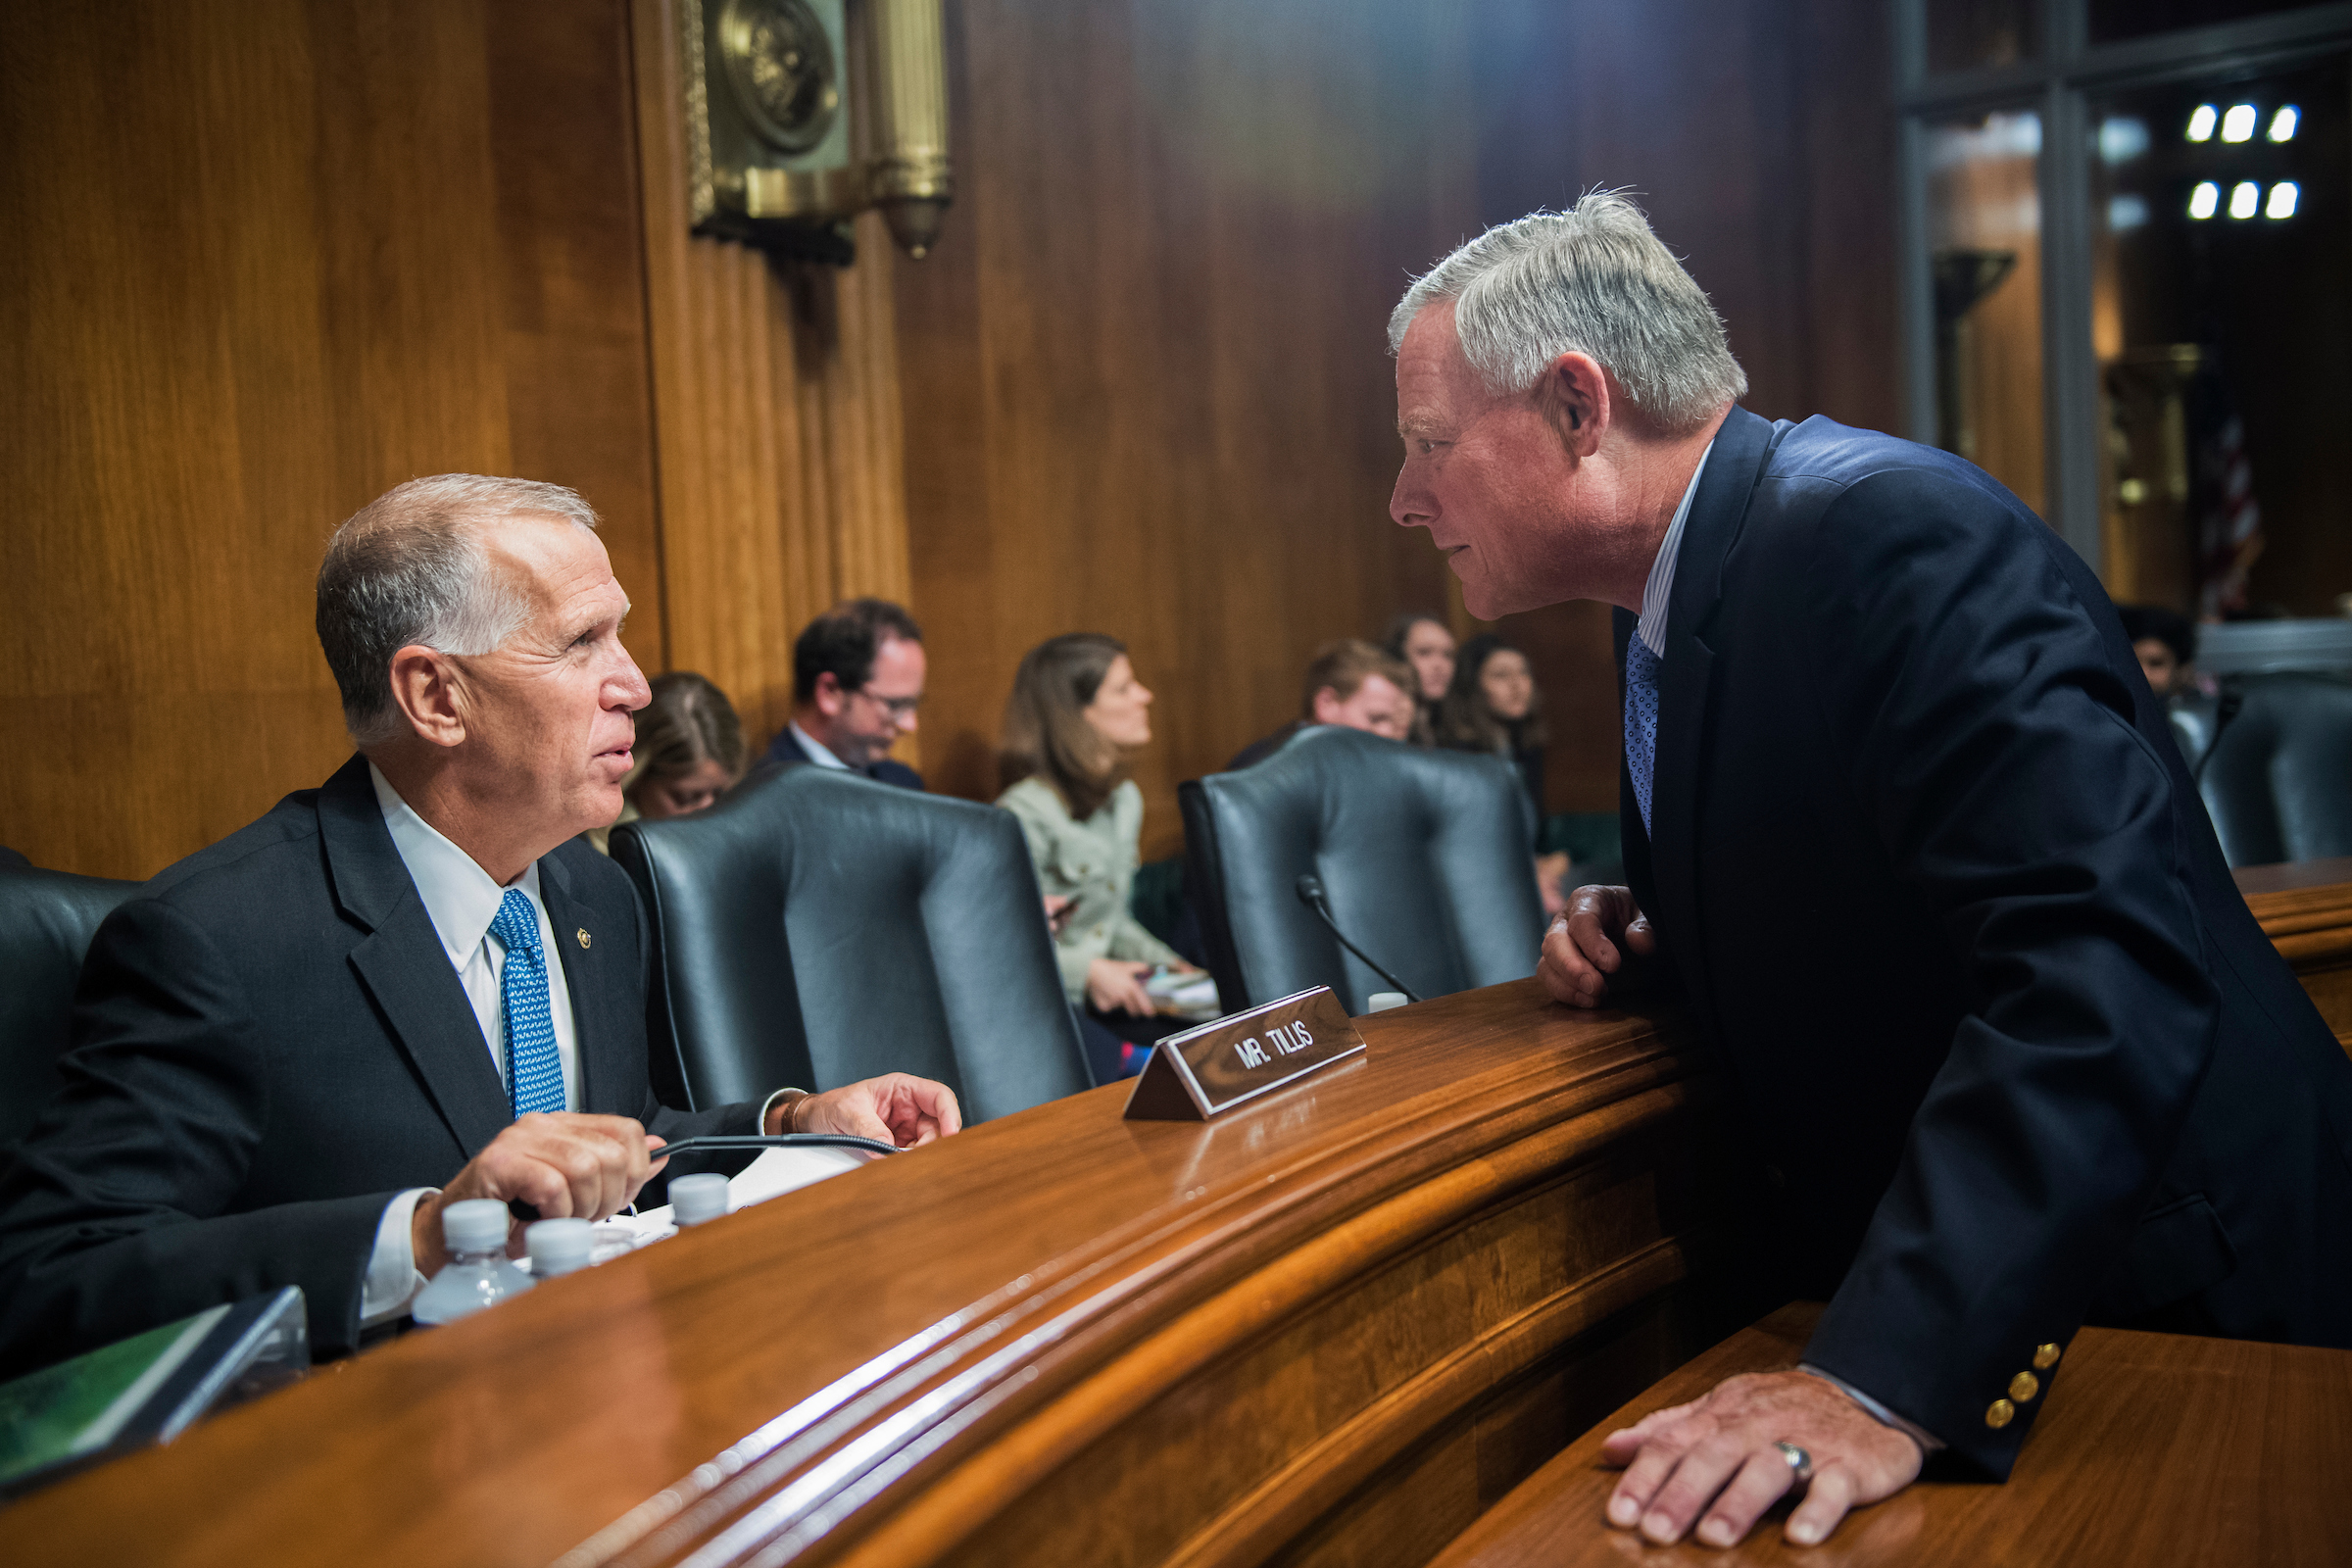 UNITED STATES - SEPTEMBER 20: Sens. Richard Burr, R-N.C., right, and Thom Tillis, R-N.C. prepare for a Senate Judiciary Committee hearing in Dirksen on judicial nominations on September 20, 2017. (Photo By Tom Williams/CQ Roll Call)